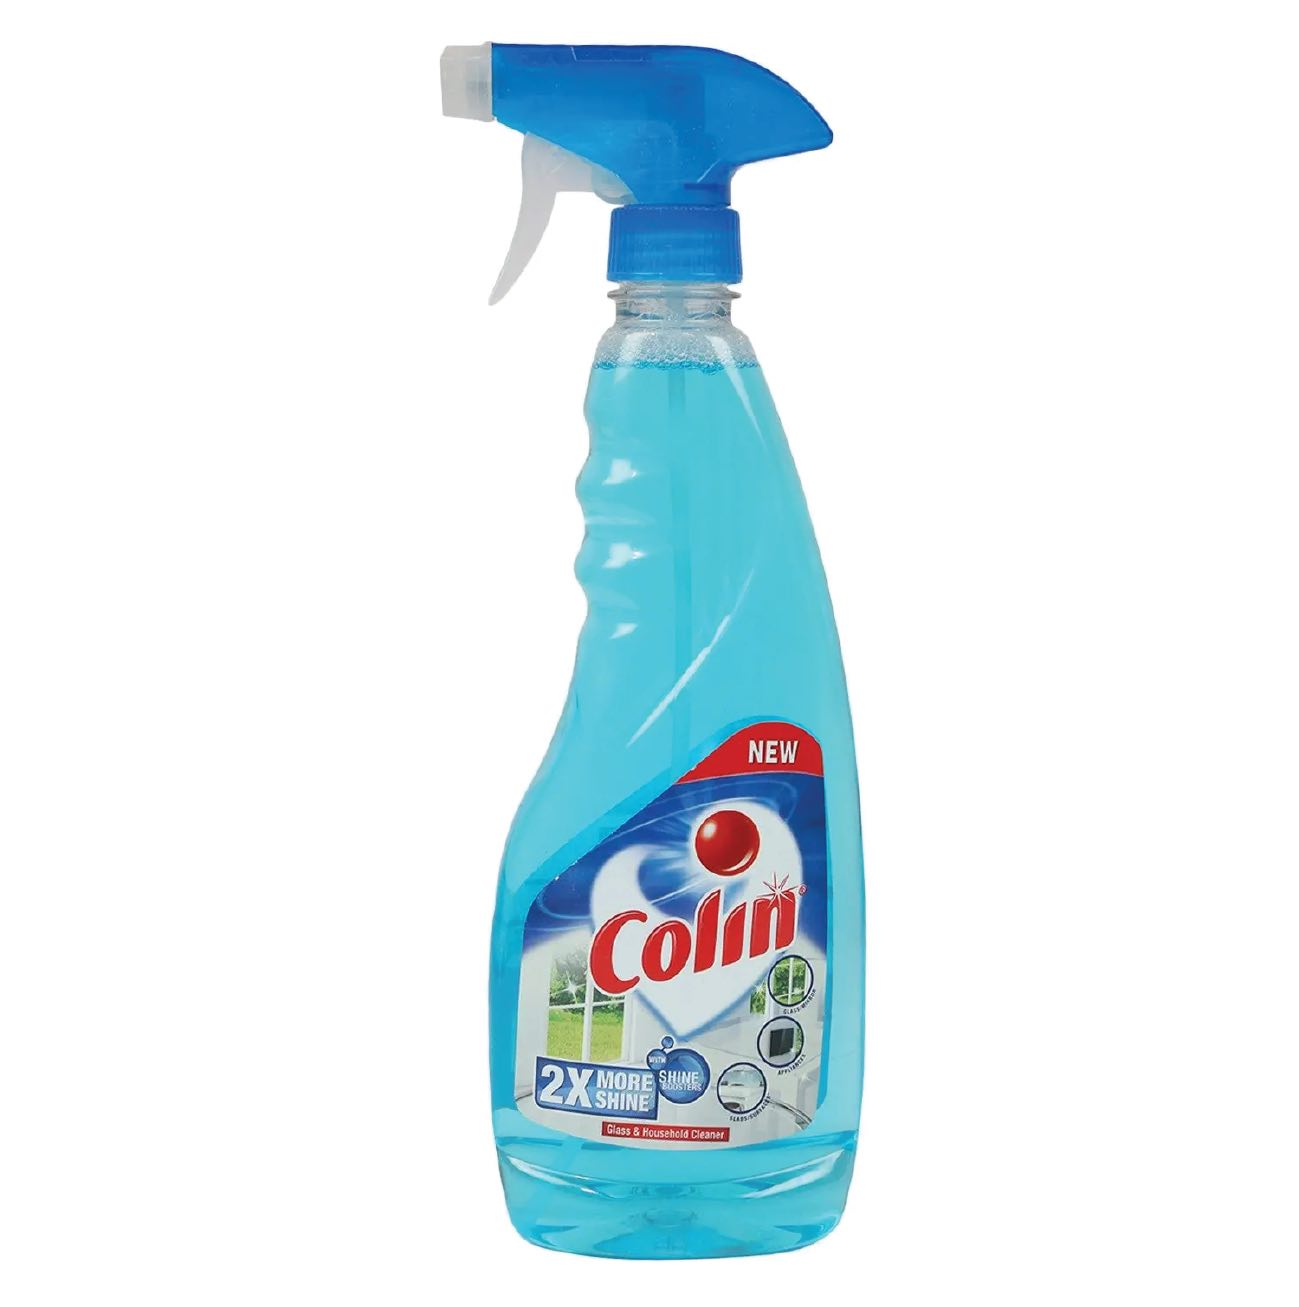 colin-glass-cleaner-ultra-500-ml